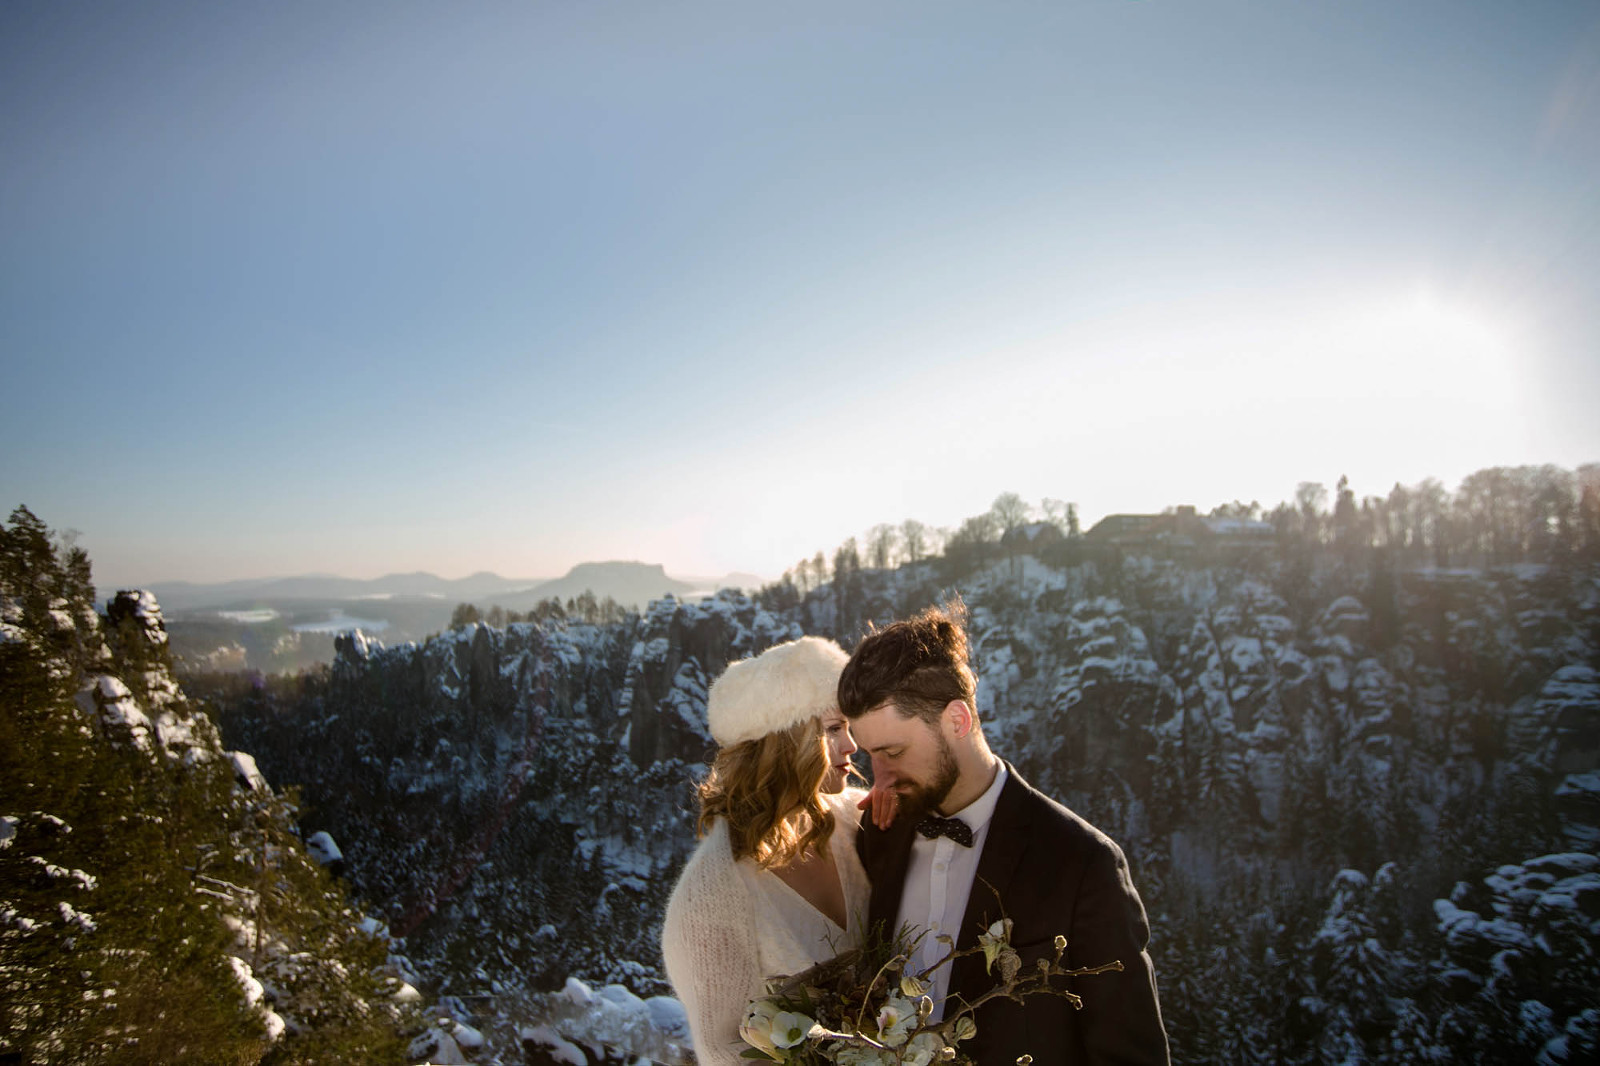 After-Wedding-Shooting im Winter in der Sächsischen Schweiz